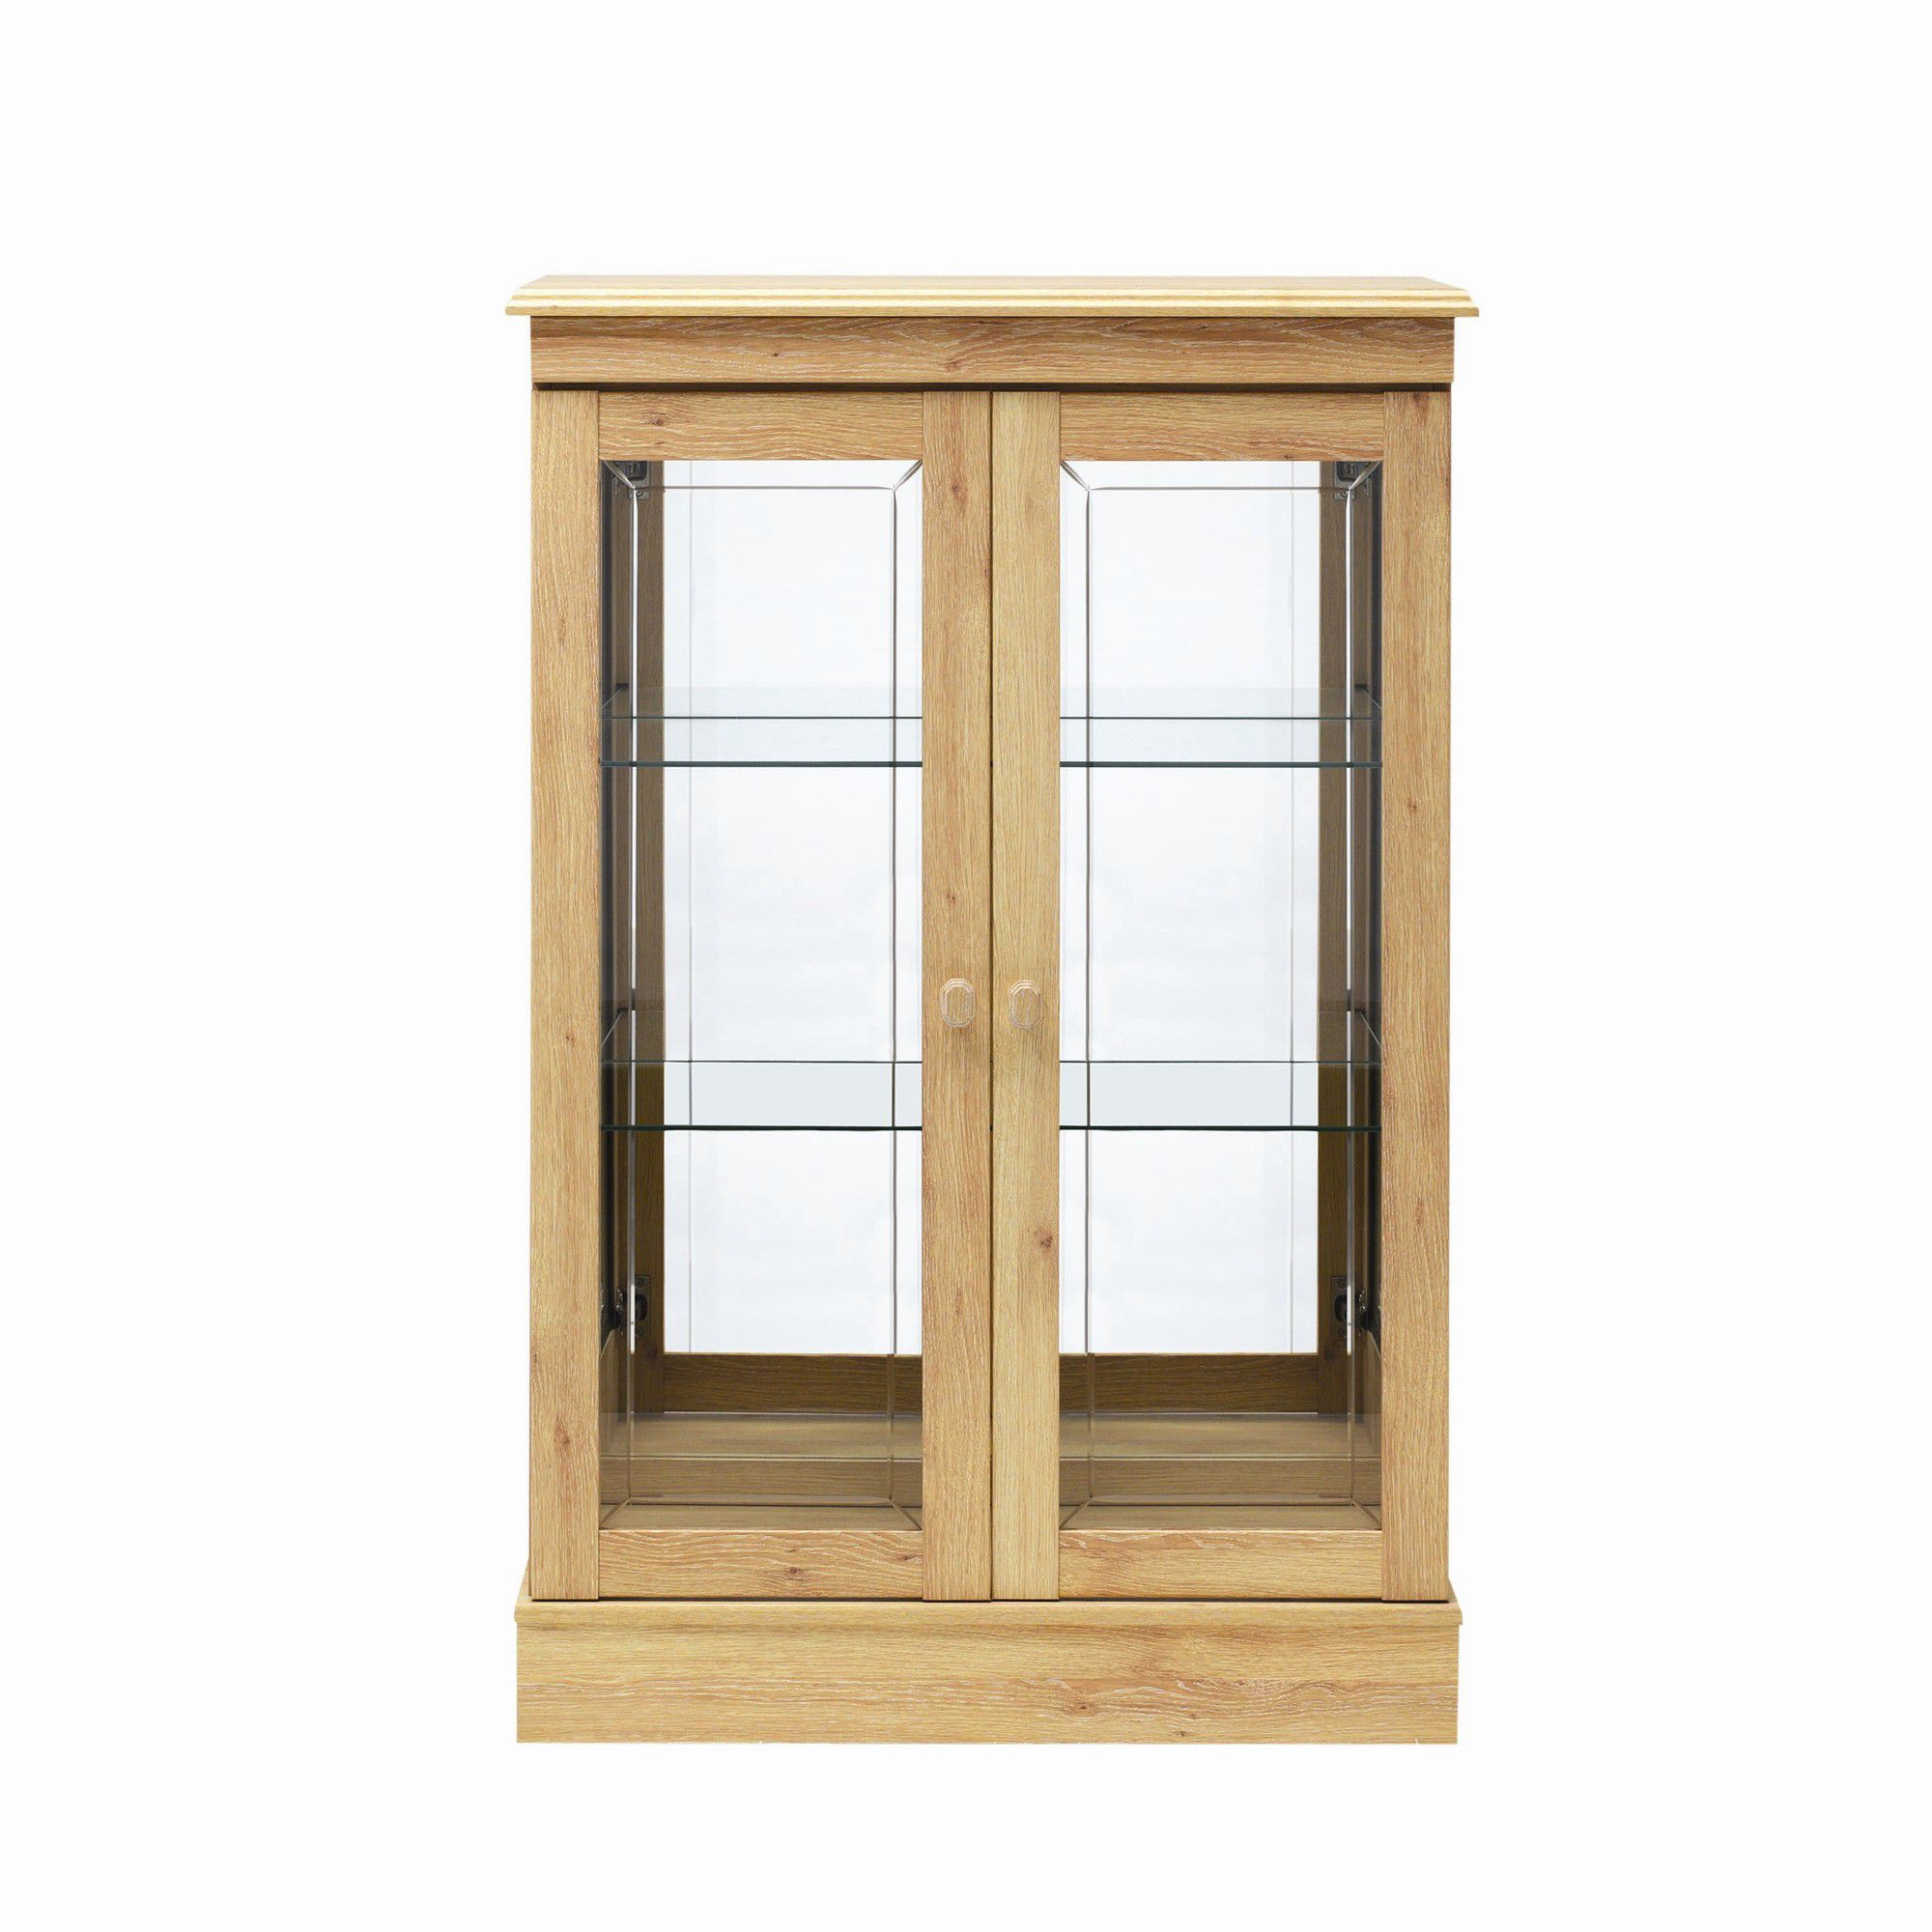 Caxton Driftwood Low Display Cabinet in Limed Oak at Tesco Direct